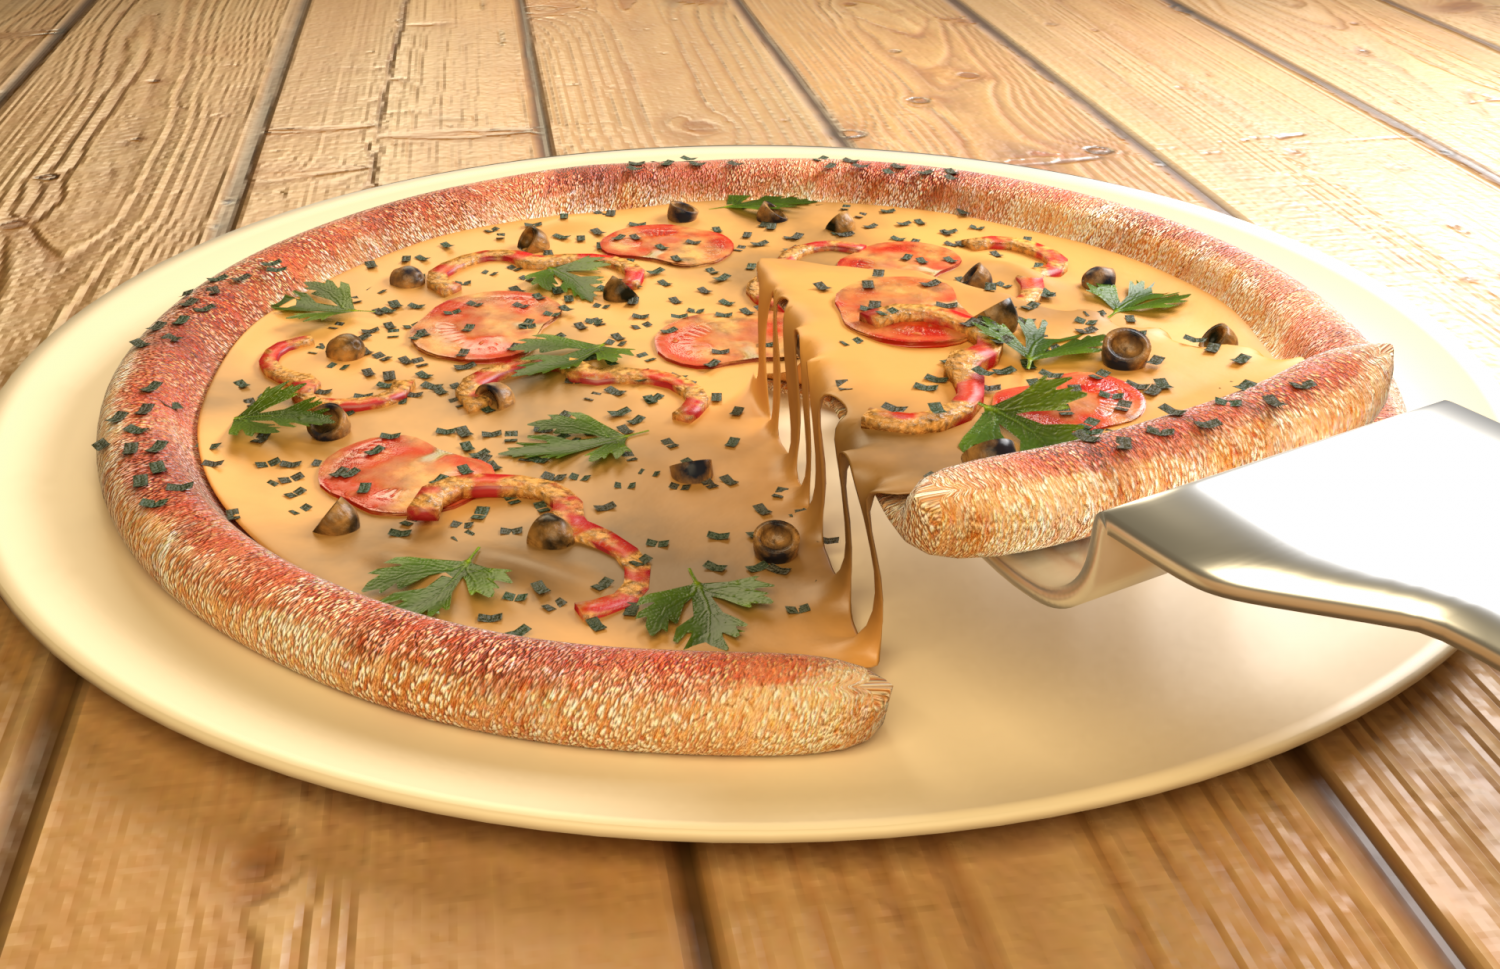 Free Pizza Free 3d Model In Miscellaneous 3dexport